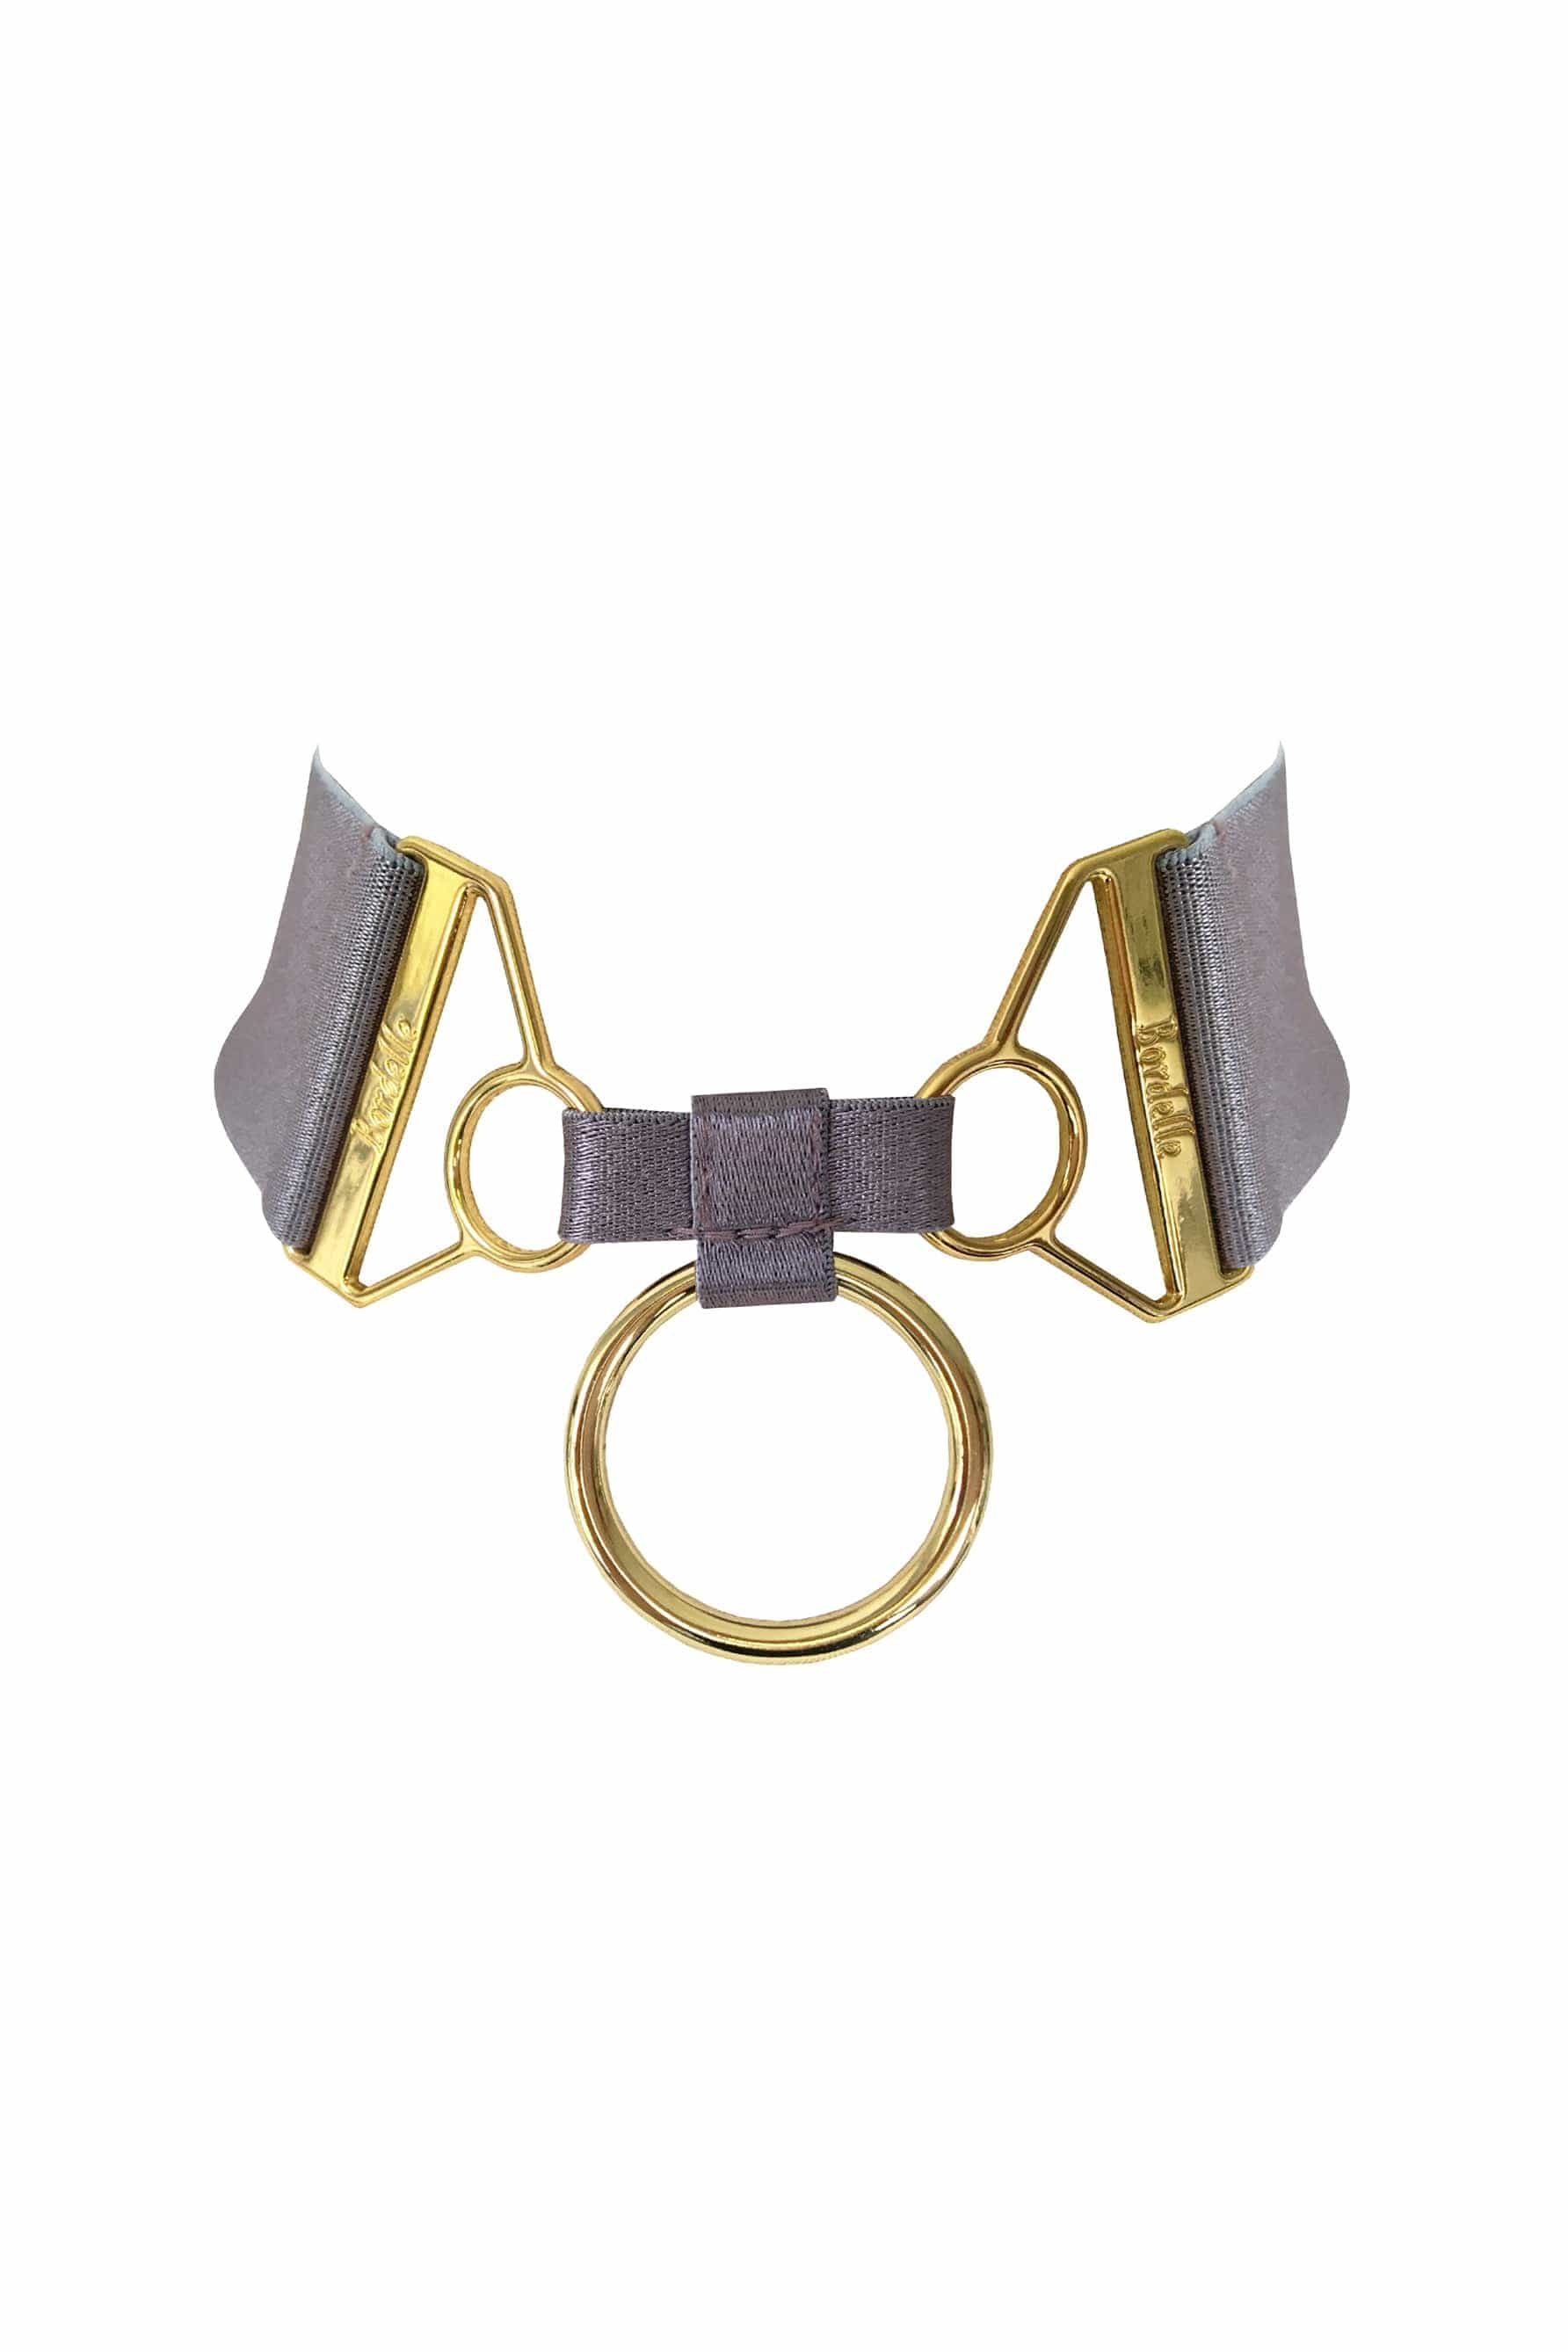 Bordelle Rey purple gray (tundra) collar in satin elastic and gold hardware, front view, on plain white background